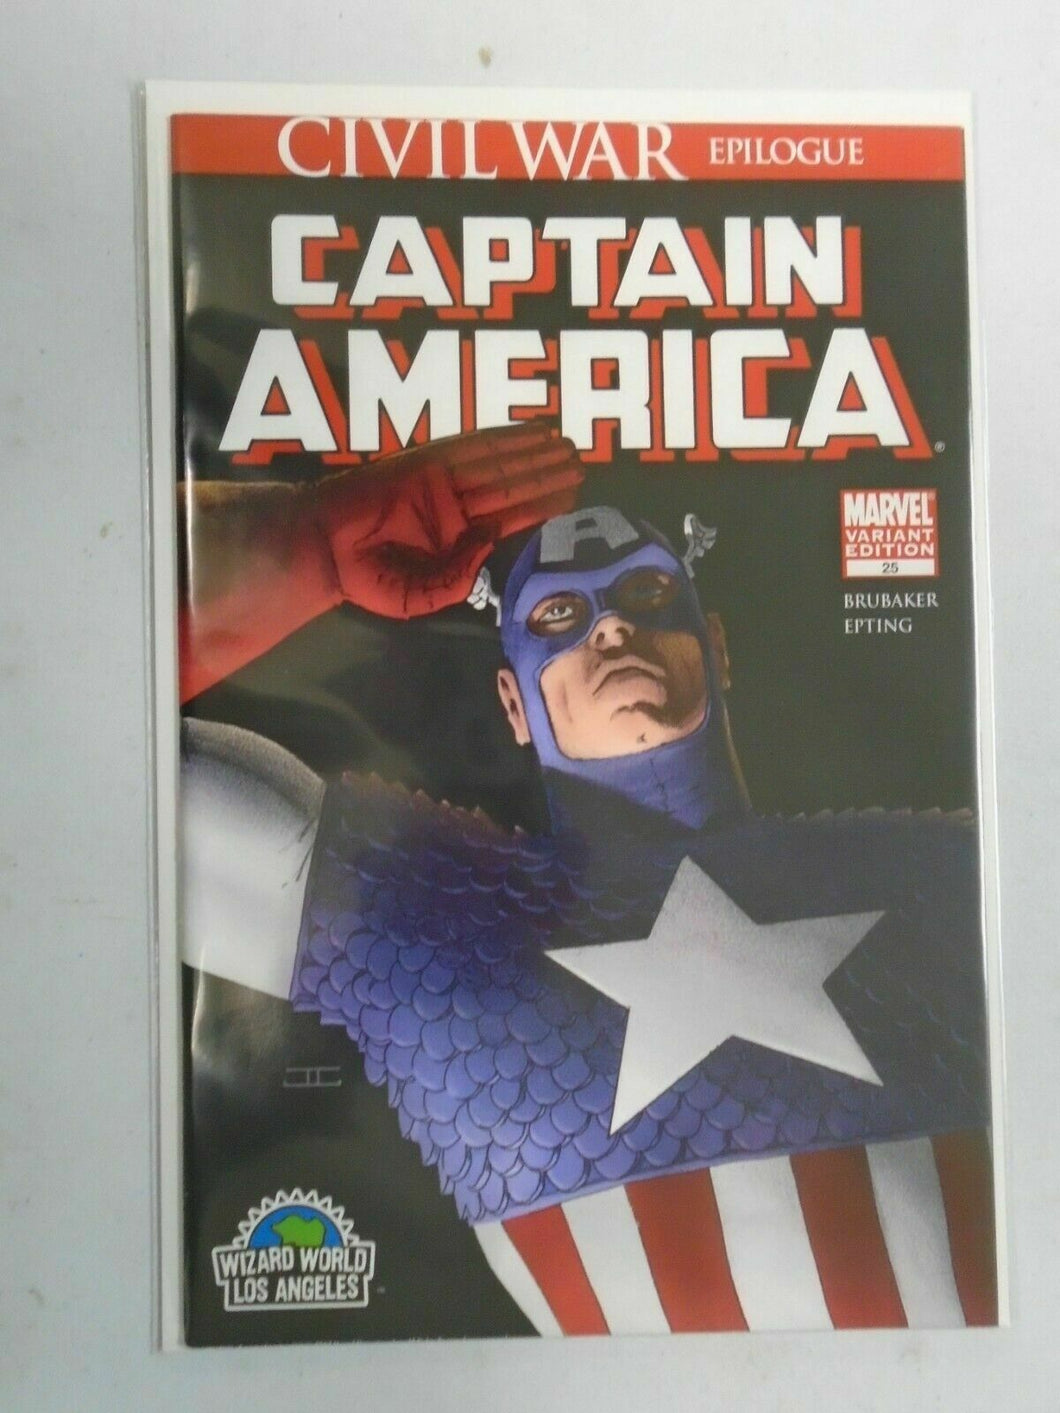 Captain America #25 E Wizard World L.A. edition 8.0 VF (2007 5th Series)